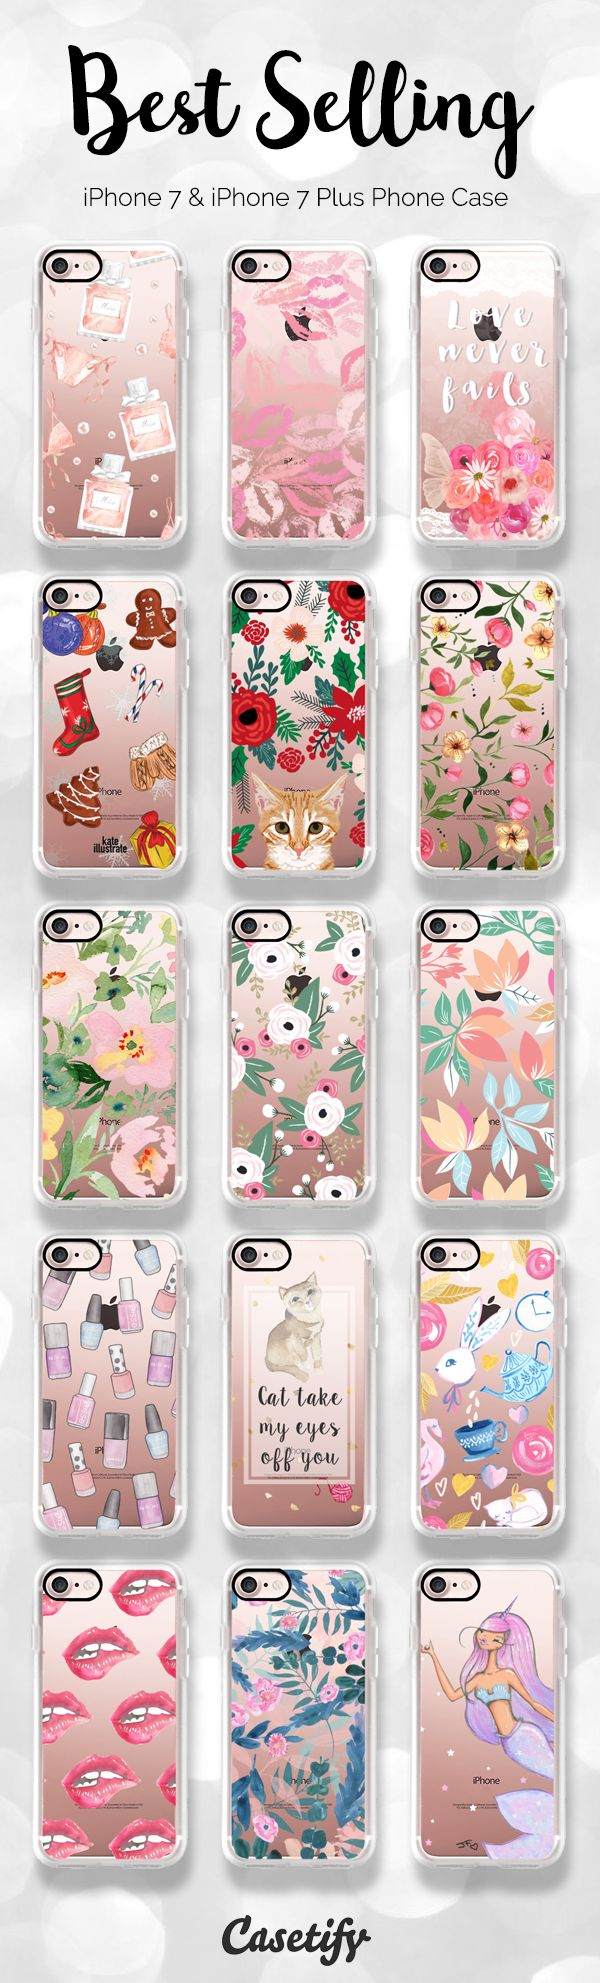 Best selling iPhone 7 and iPhone 7 Plus case right now at Casetify. Shop these designs here > https://www.casetify.com/artworks/IOwzWDNoNu